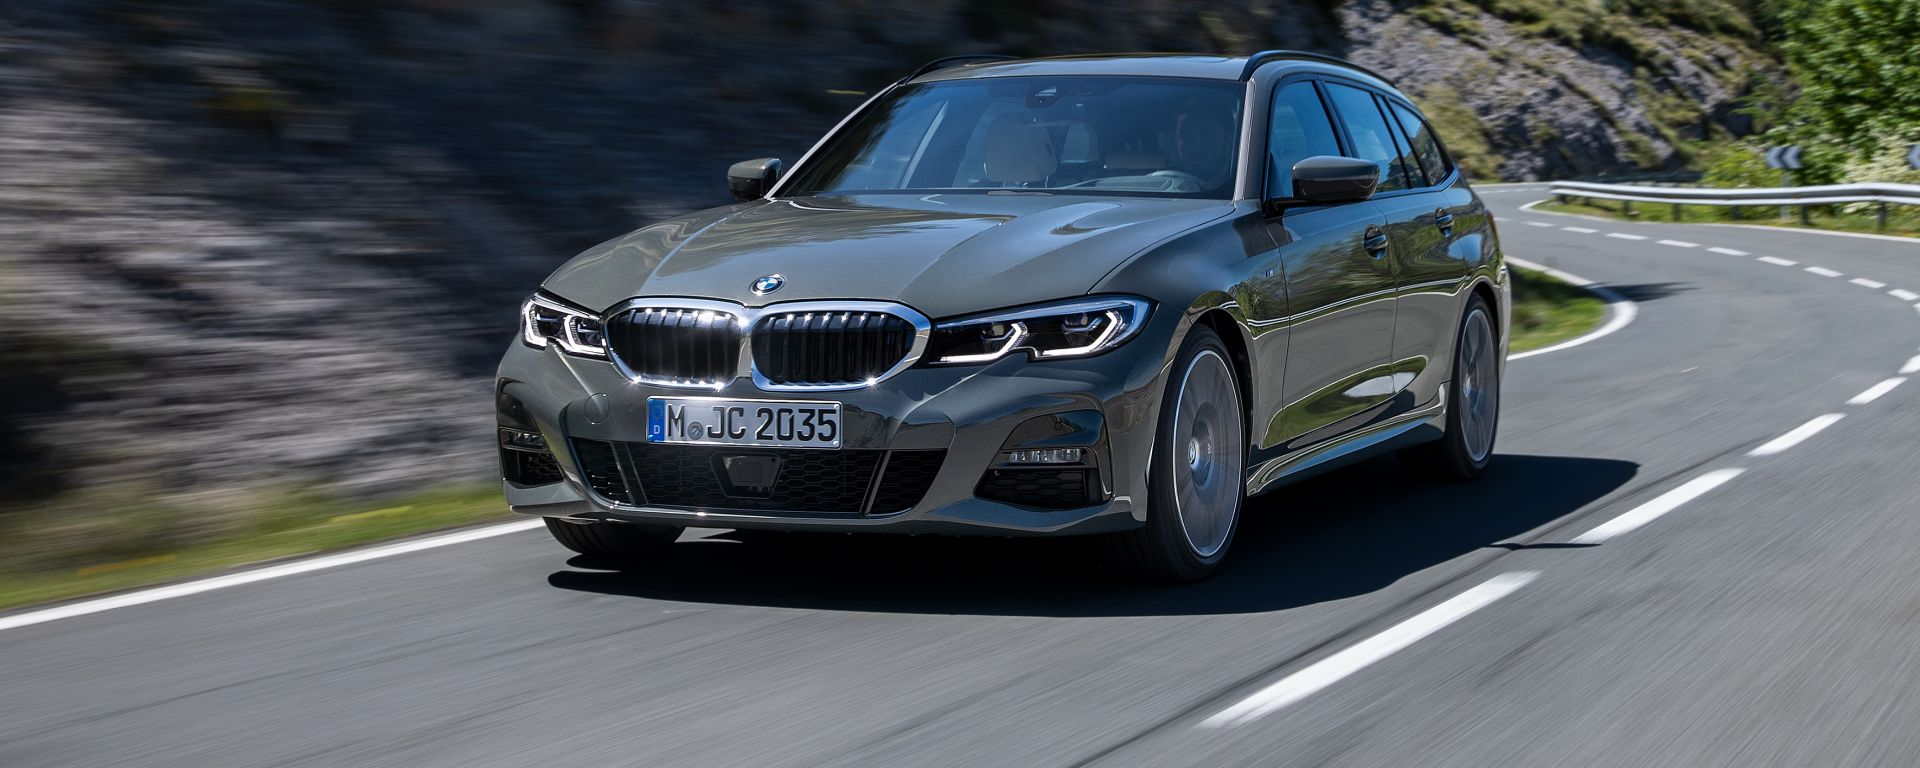 BMW Serie 3 Touring: il frontale